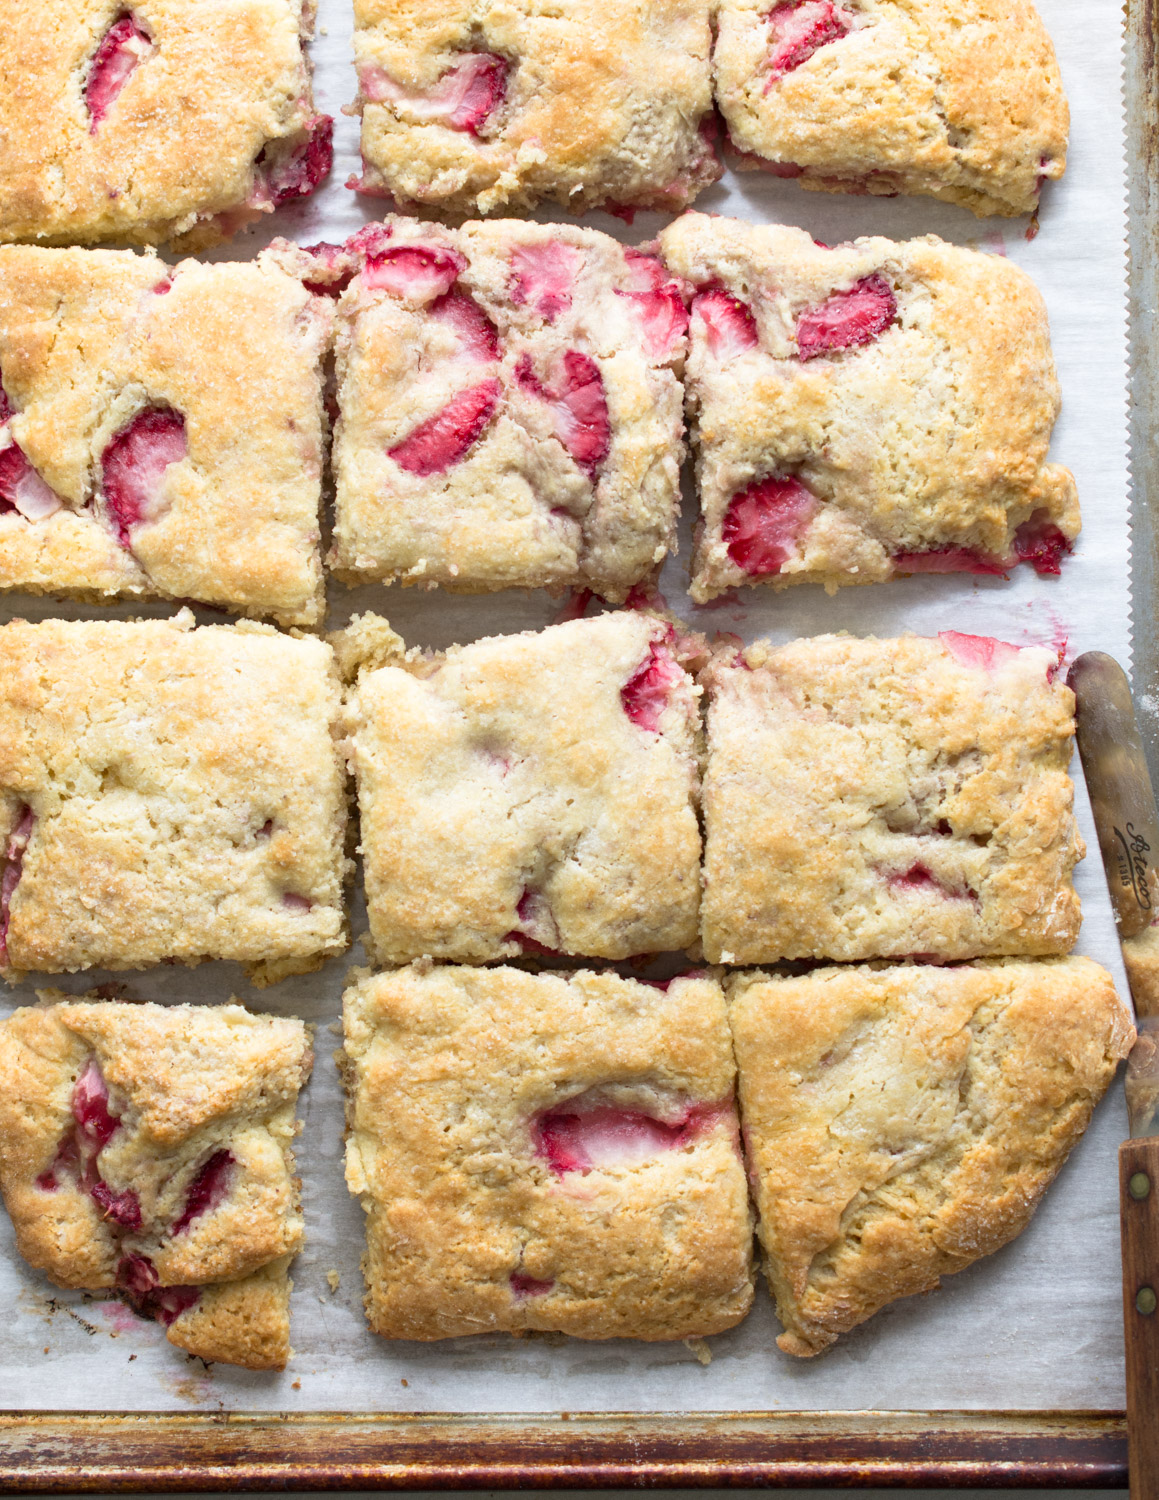 Fresh out of the oven strawberry biscuits.